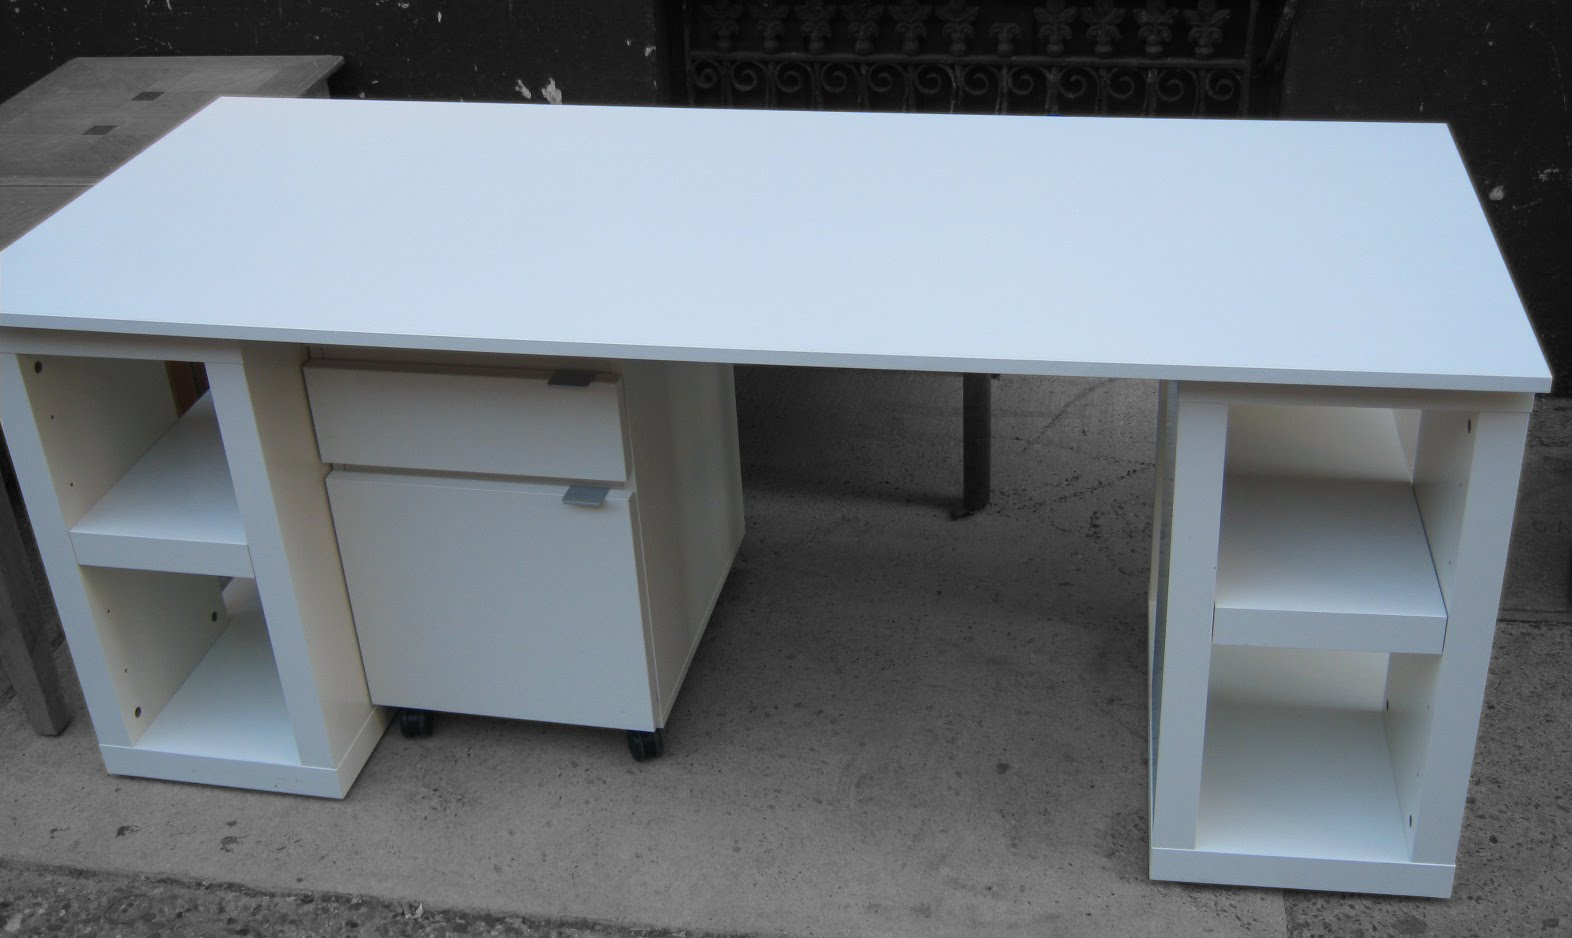 Uhuru Furniture Collectibles Ikea 4 Piece Modular Desk Sold